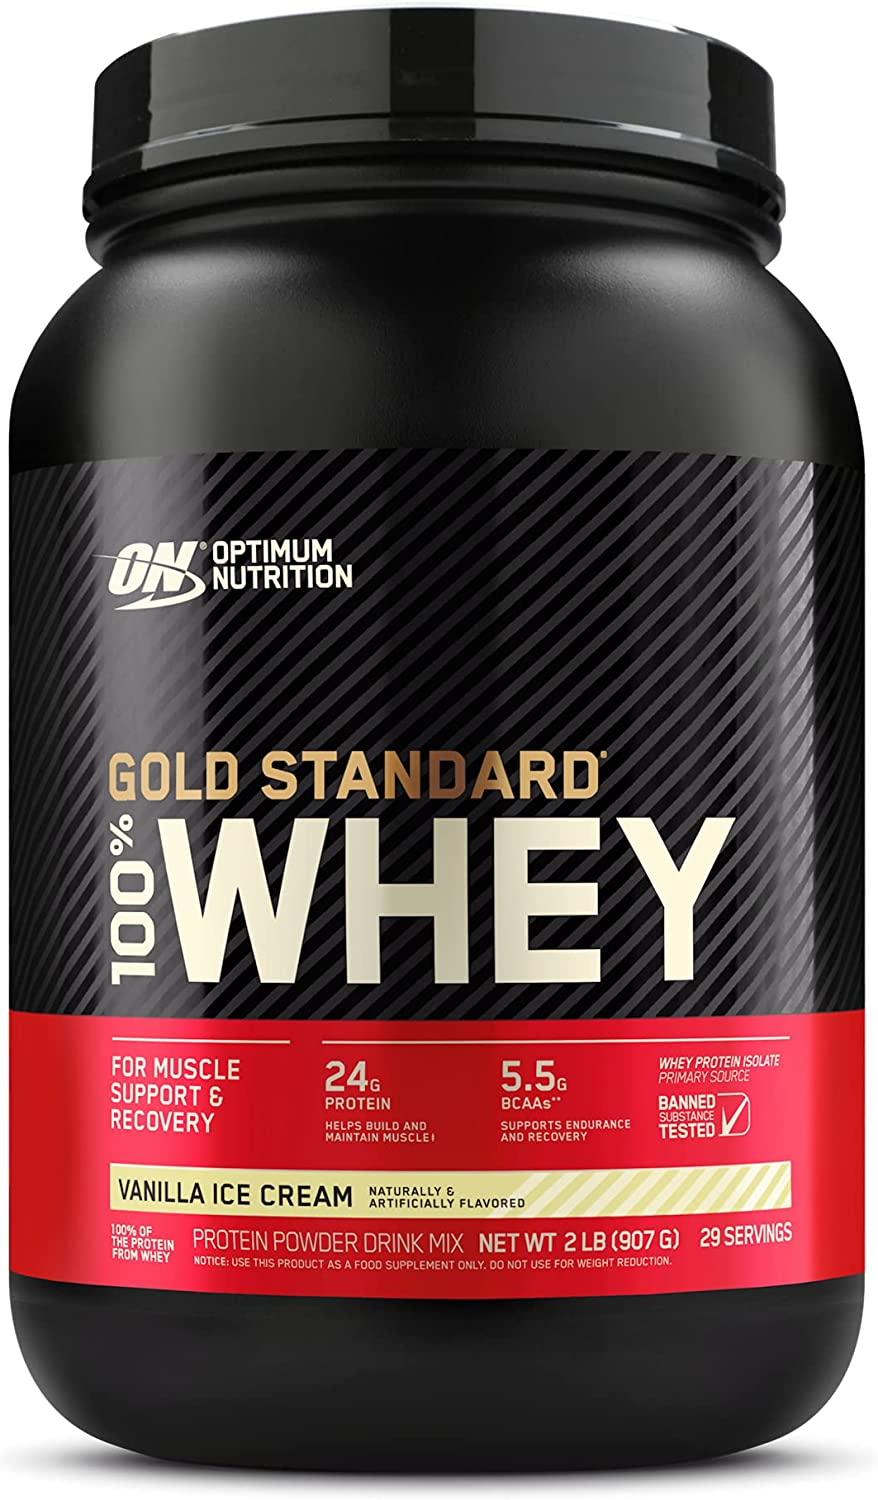 Optimum Nutrition Gold Standard 100% Protein Vanill Discount mail order Be super welcome Powder Whey